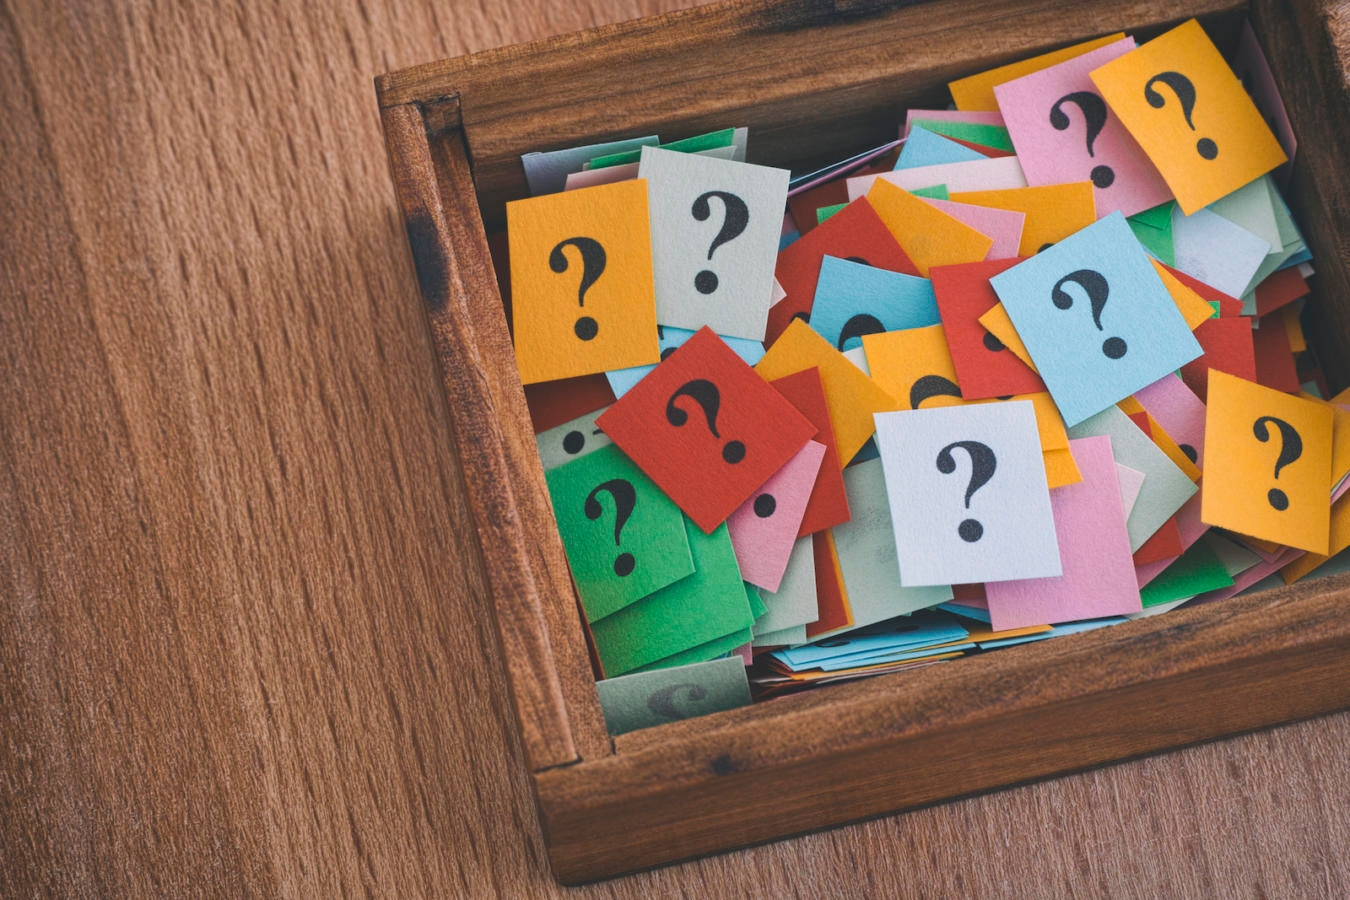 Question marks in a wooden box